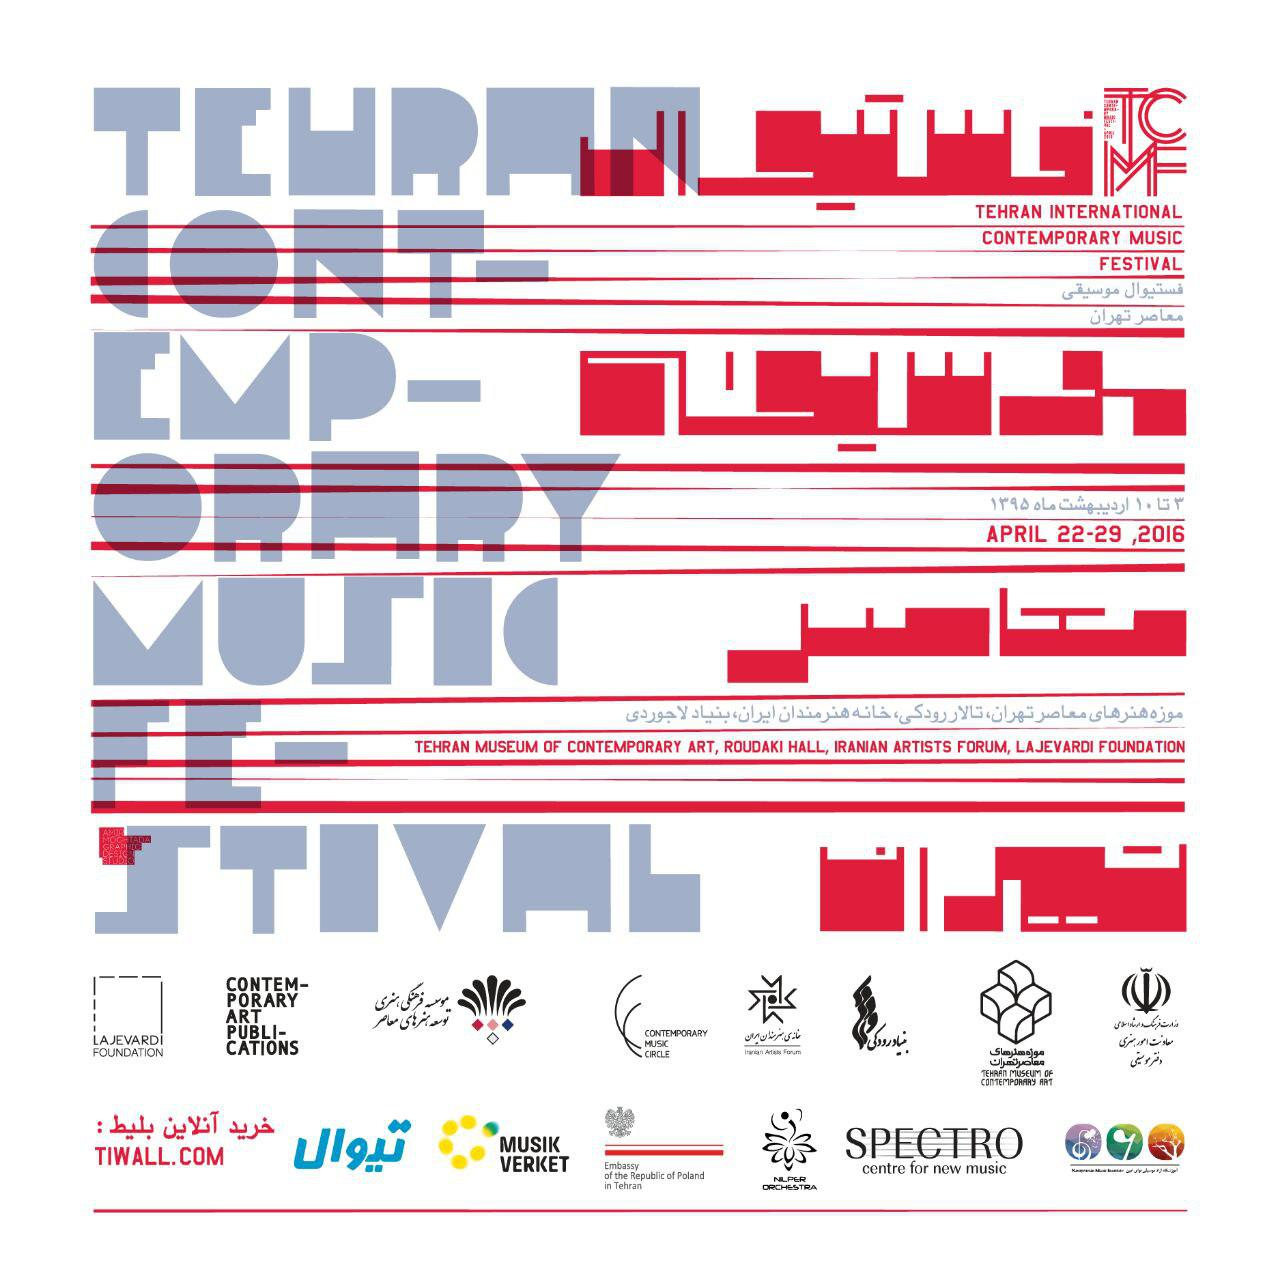 Tehran Contemporary Music Festival